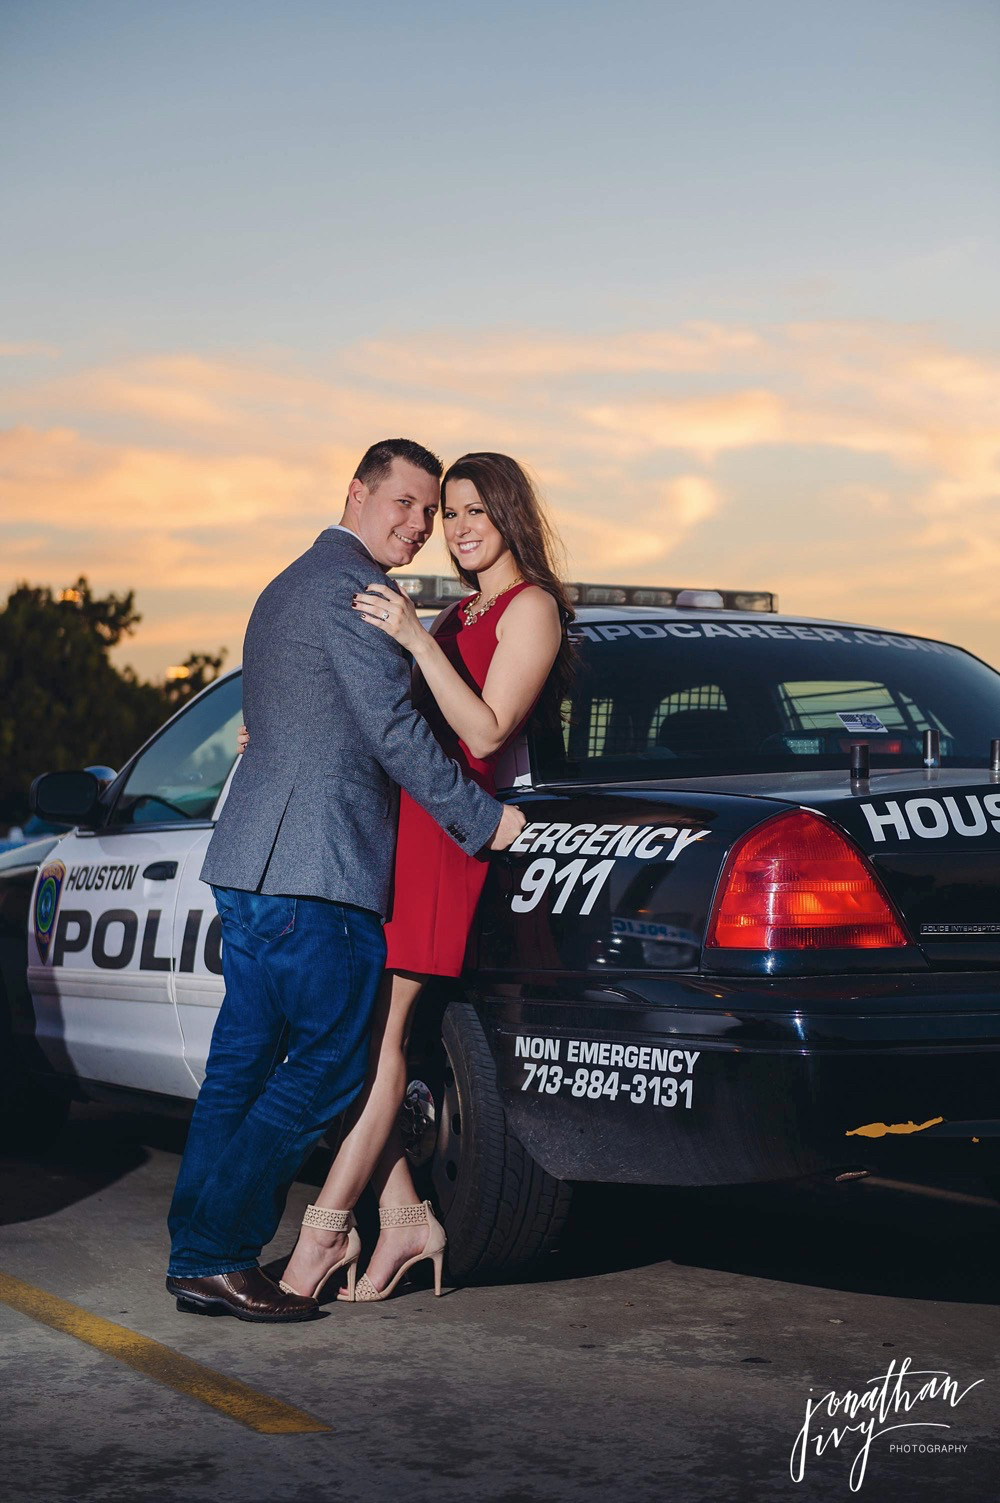 police themed engagement photo